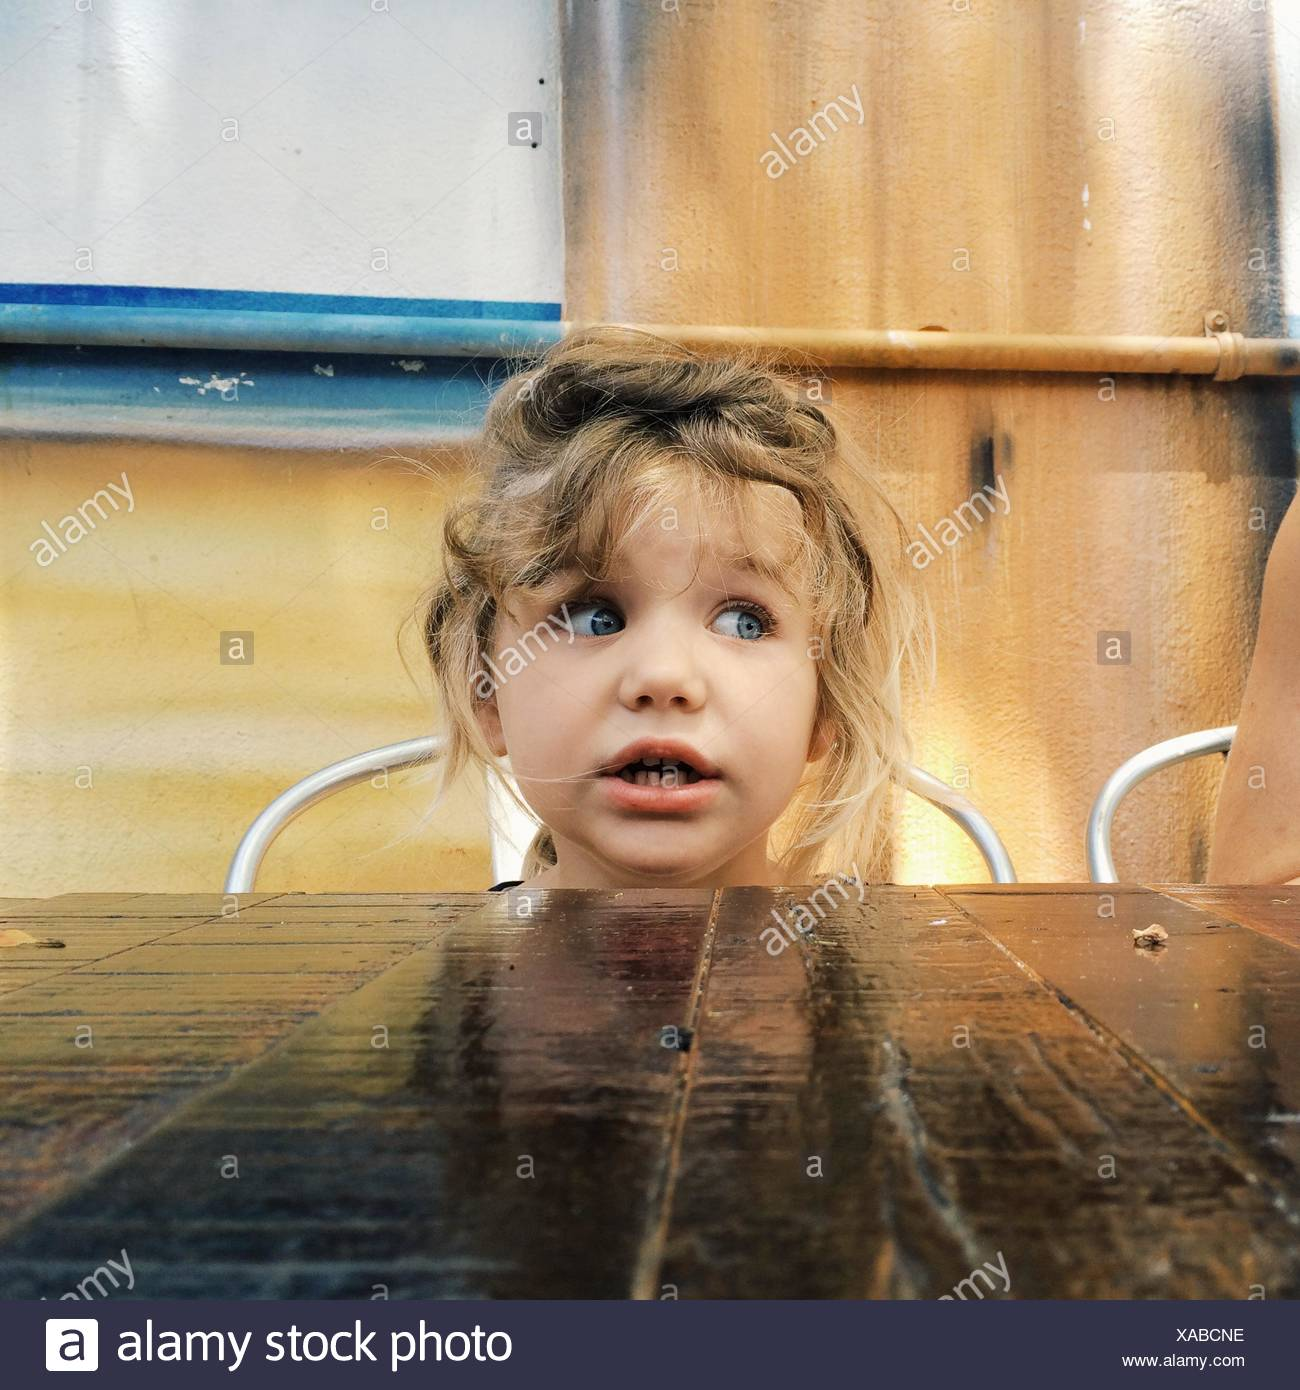 USA, Florida, Palm Beach County, West Palm Beach, Girl (2-3) sitting at table - Stock Image